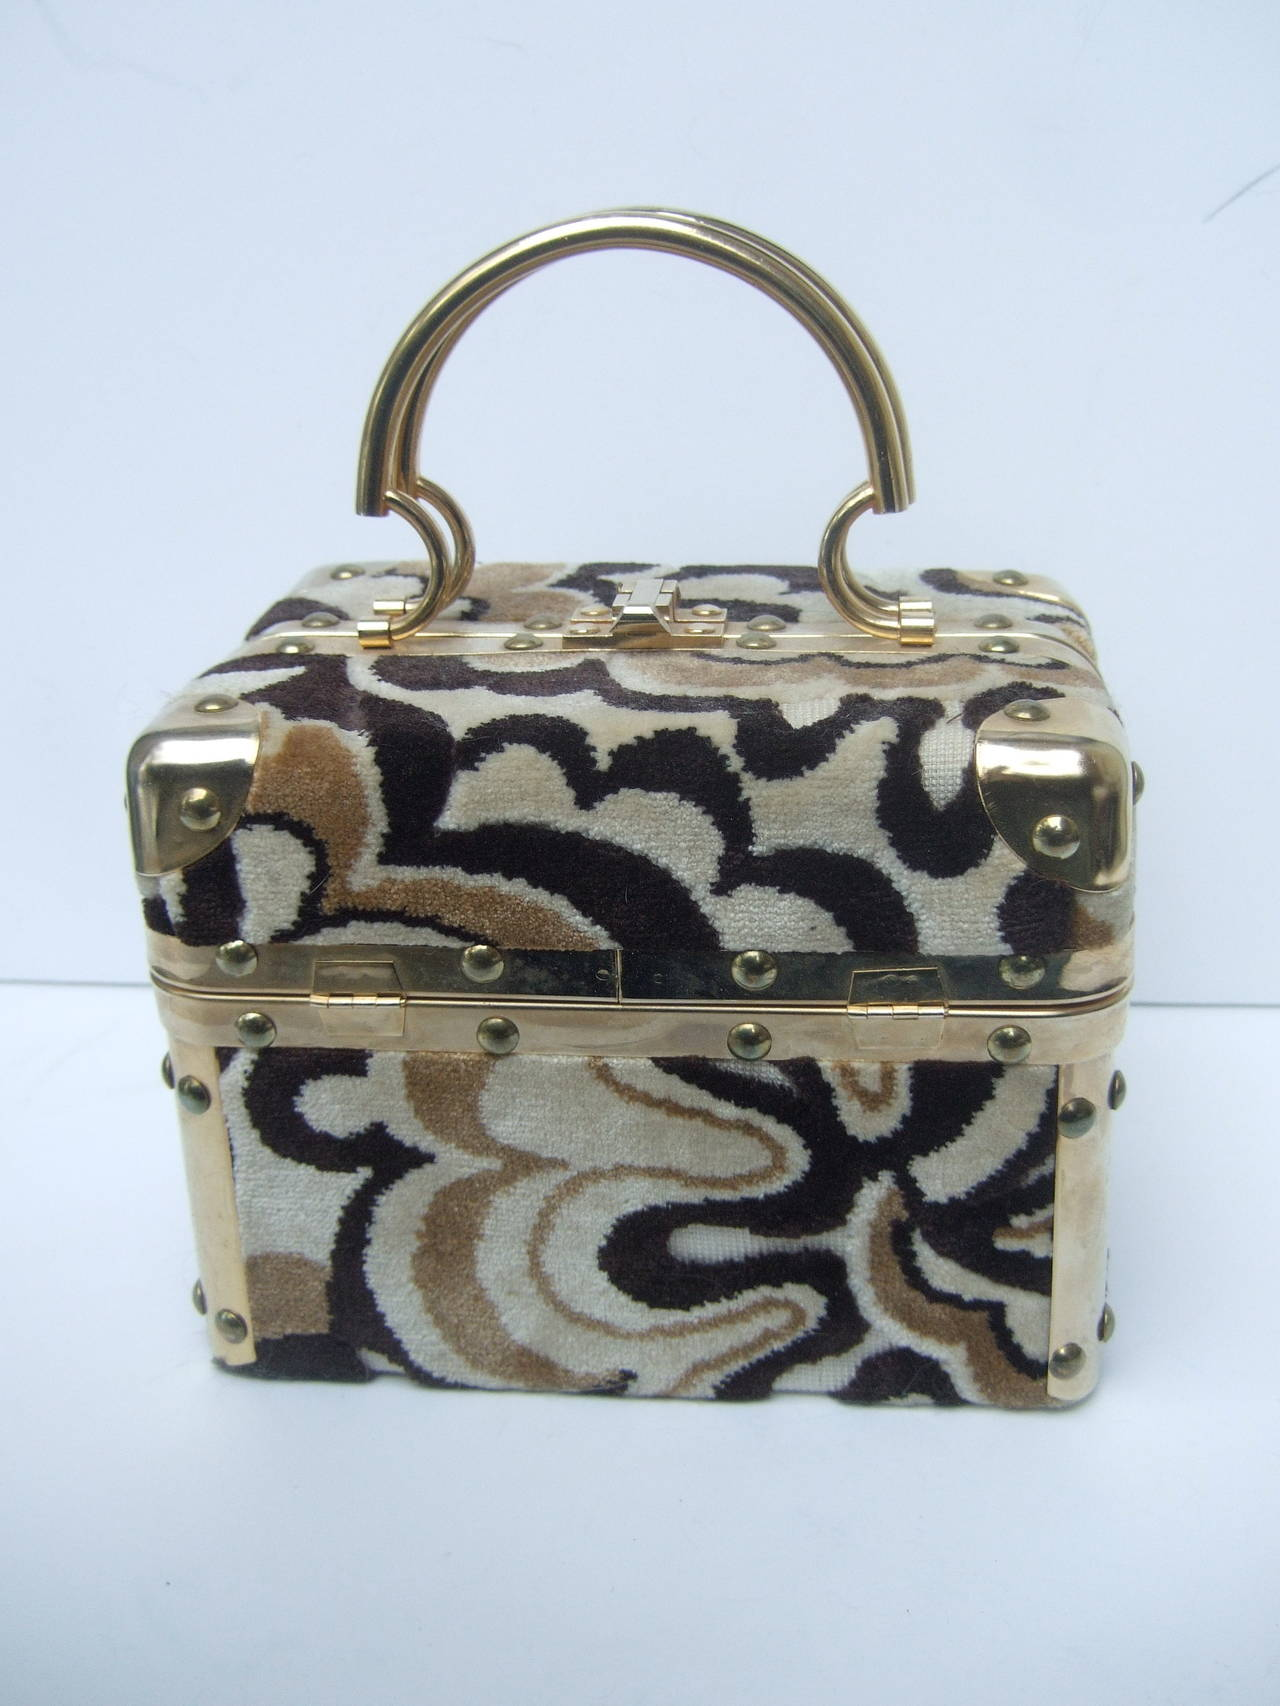 Mod cut velvet Italian handbag designed by Fleurette of Miami c 1970